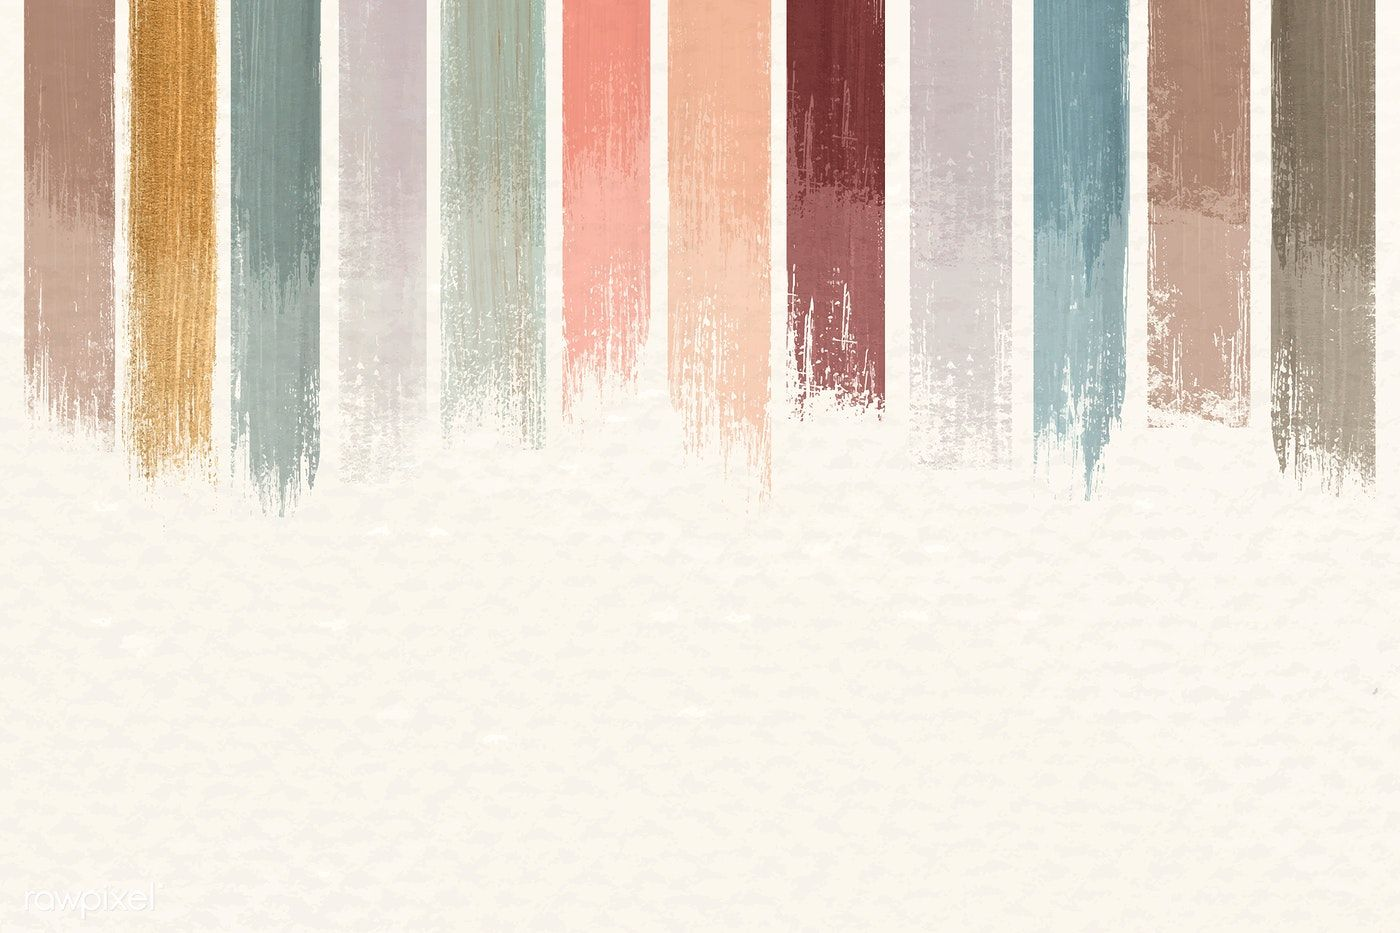 Pastel Acrylic Abstract Background Vector Free Image By Rawpixel